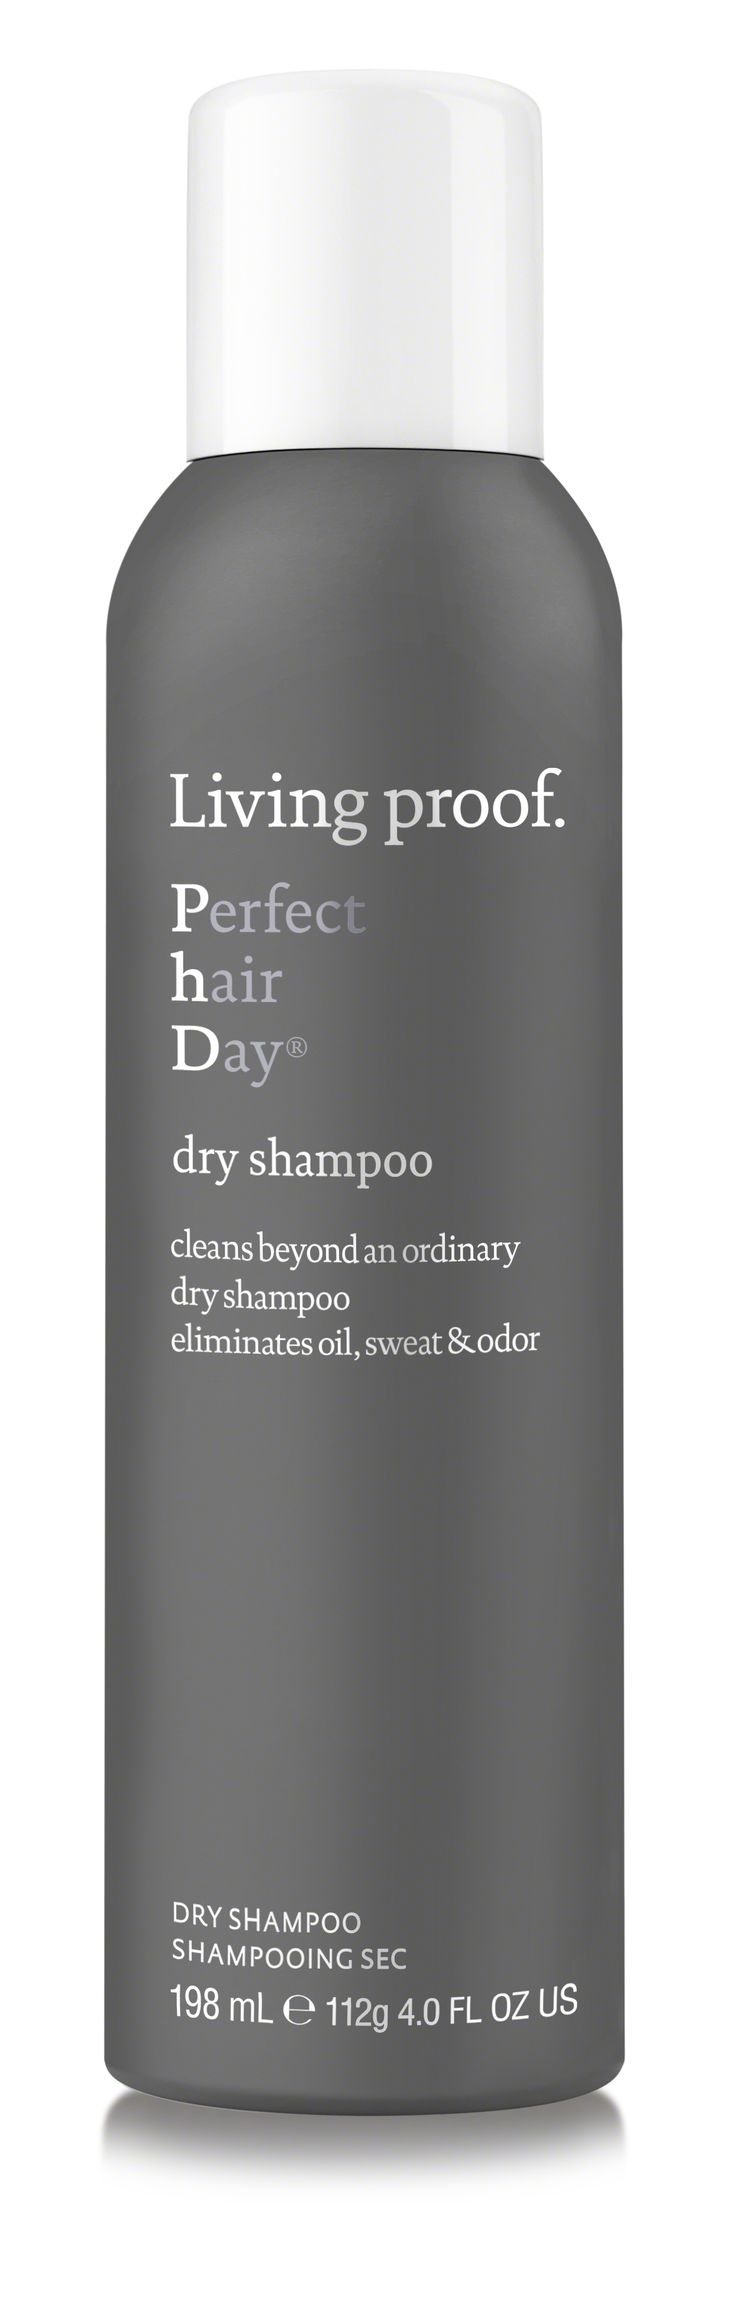 Introducing the first dry shampoo to eliminate oil, sweat and odors, Perfect hair Day Dry Shampoo. How long can you go between washes?